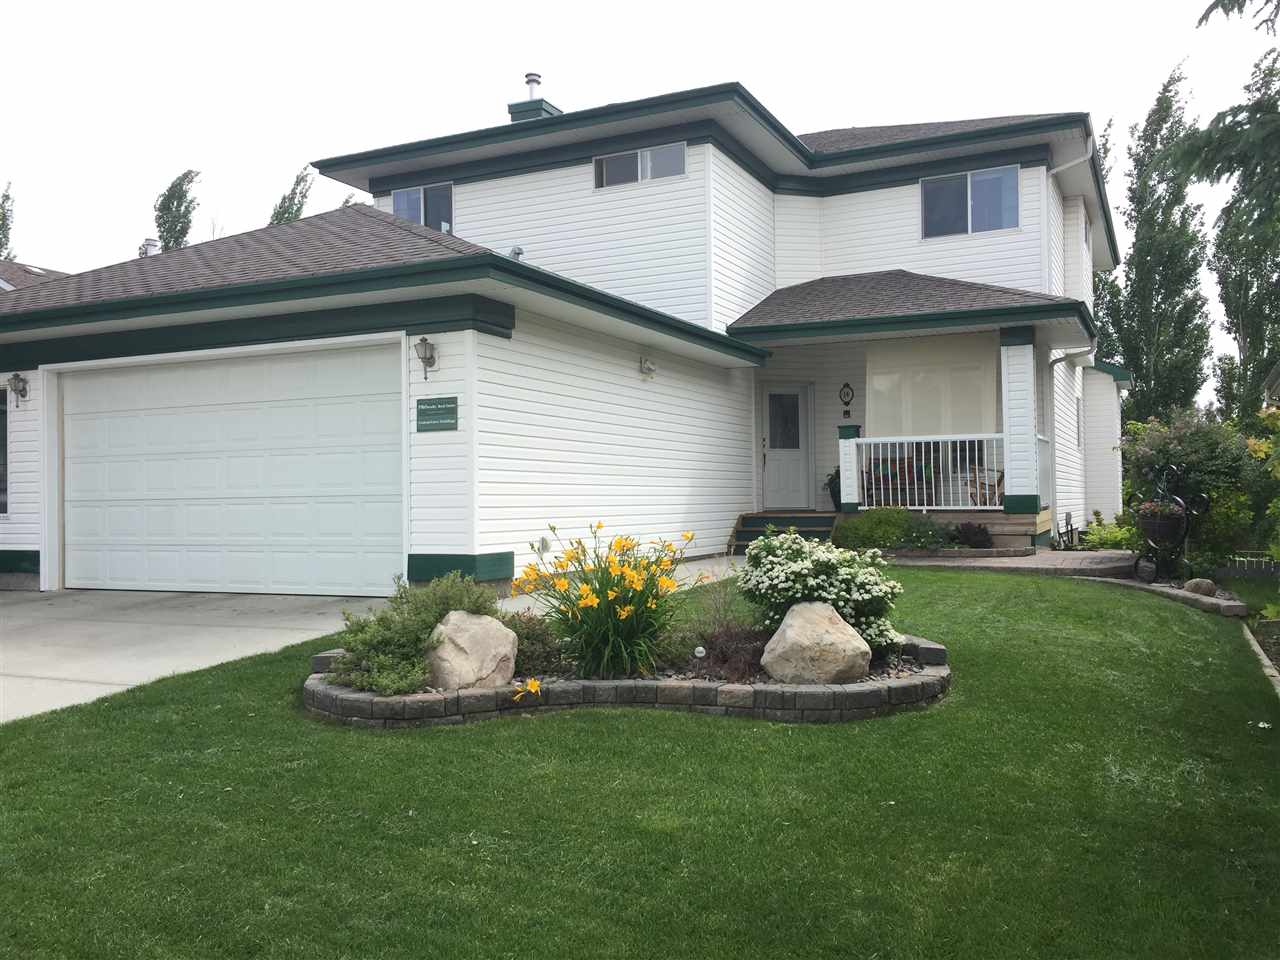 14 OVERTON Place, St. Albert, AB T8N 6W9